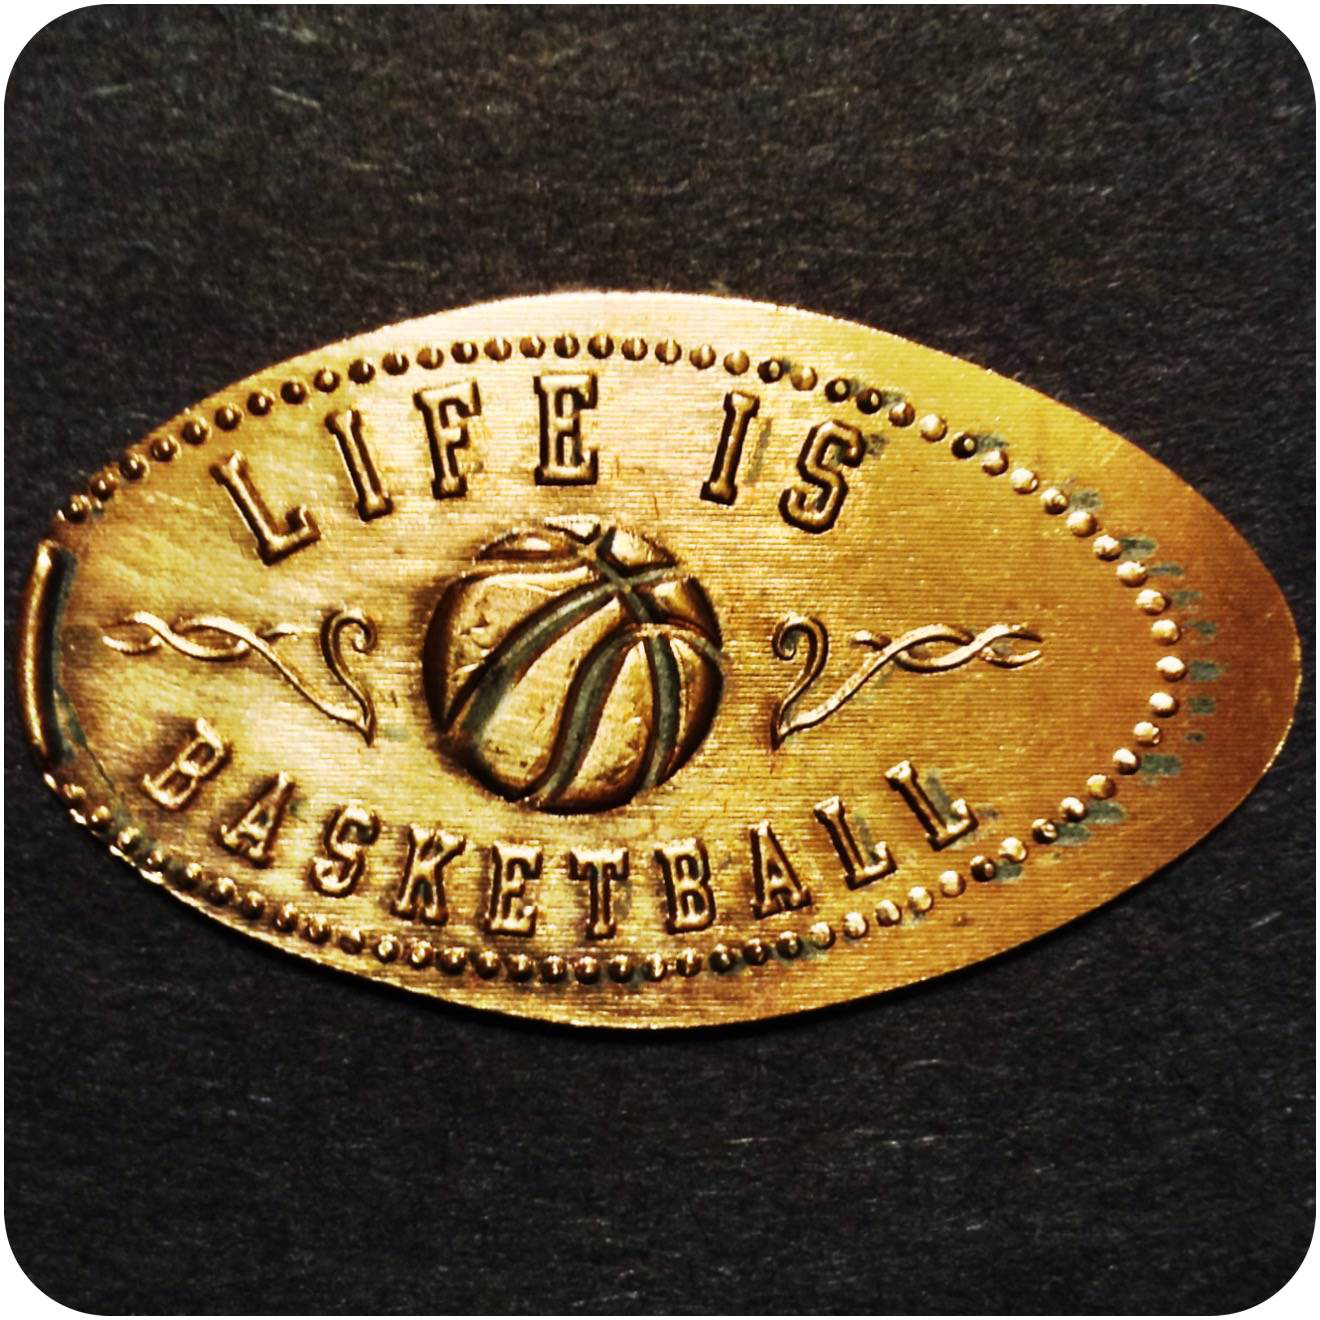 Life is Basketball - Food Court at Lexington Center, KY Kentucky Elongated Penny